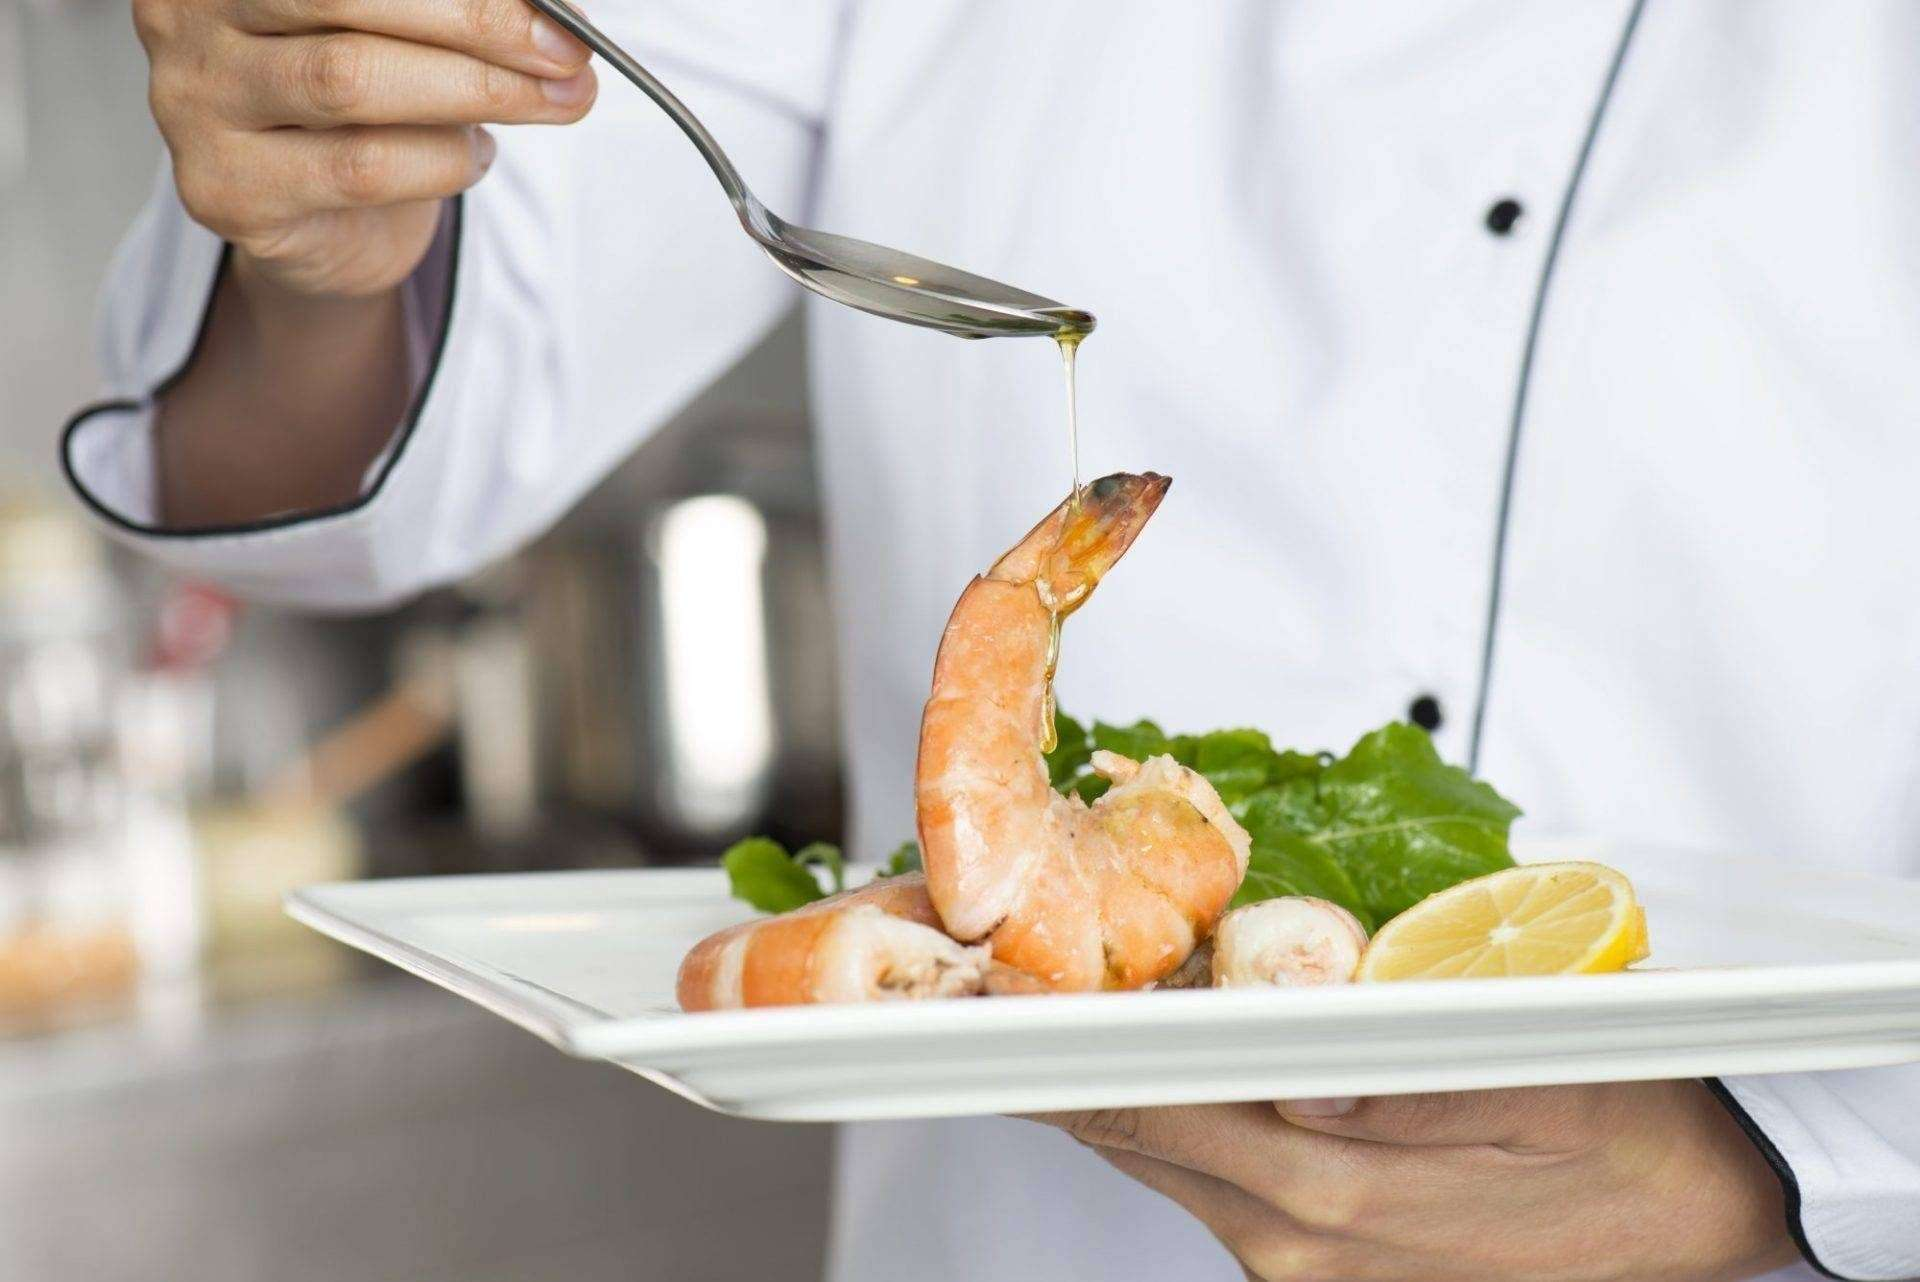 Chef completing shrimp plate.